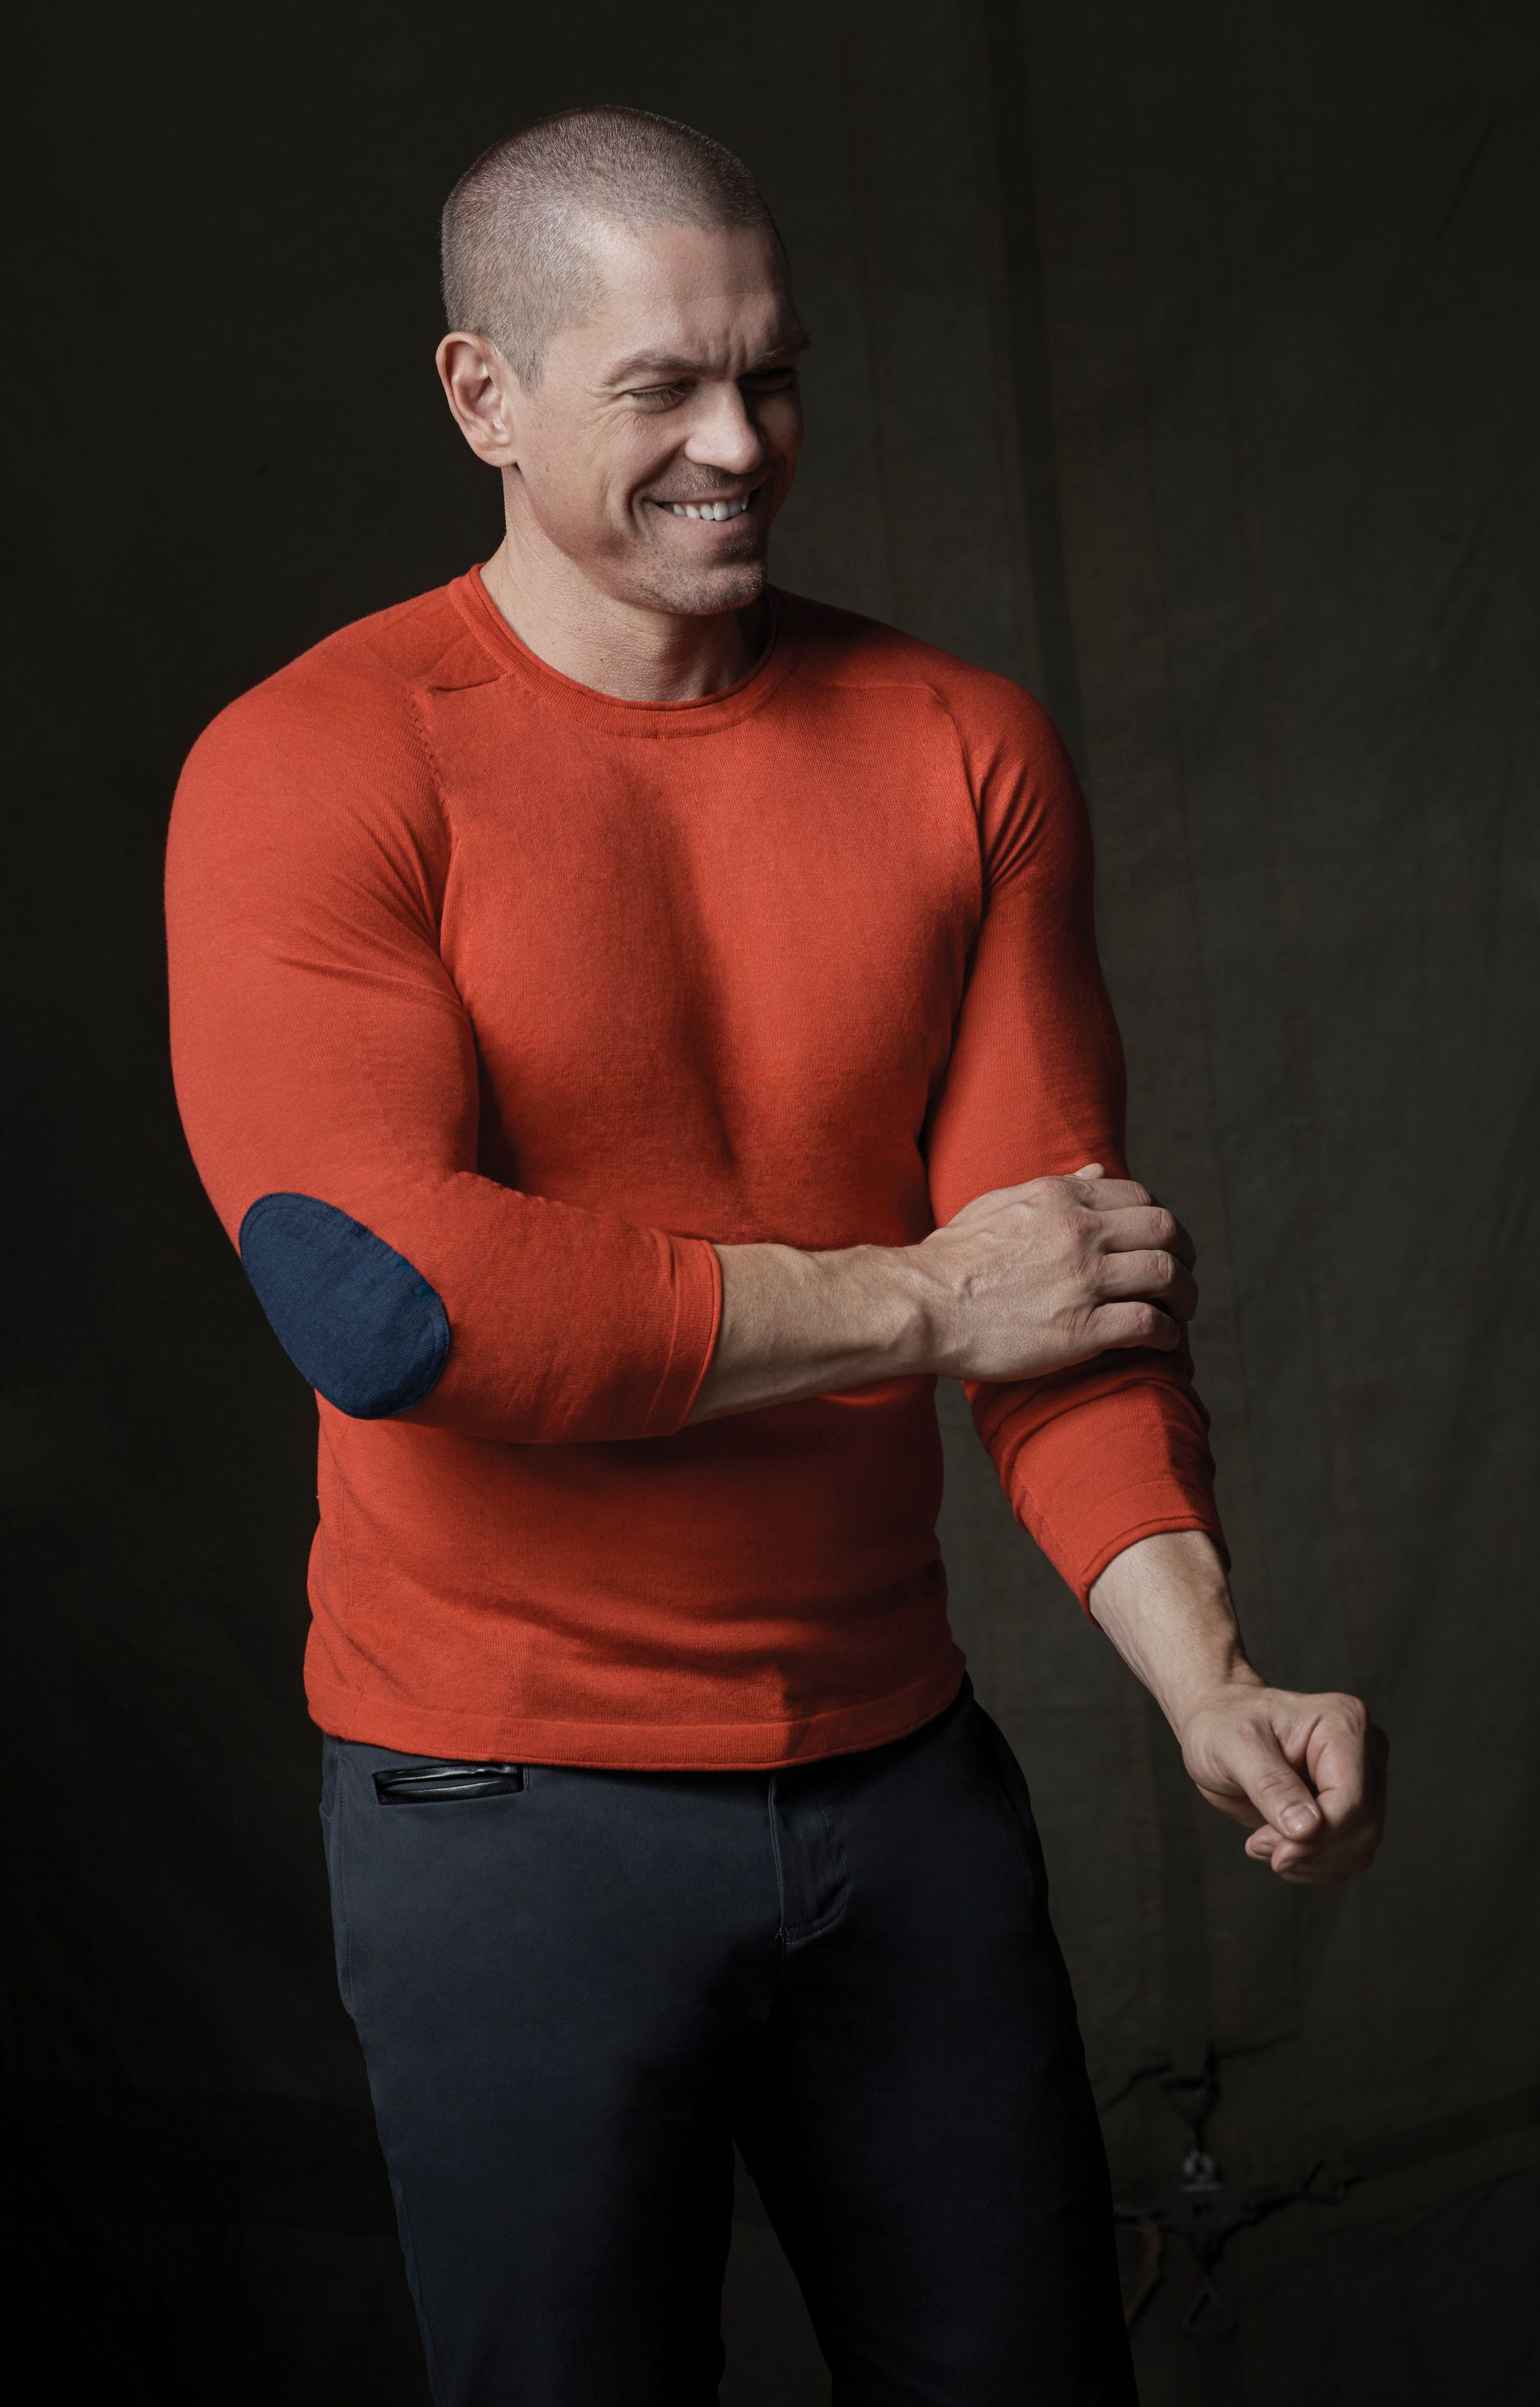 Actor Steve Howey laughing and wearing an orange sweater.